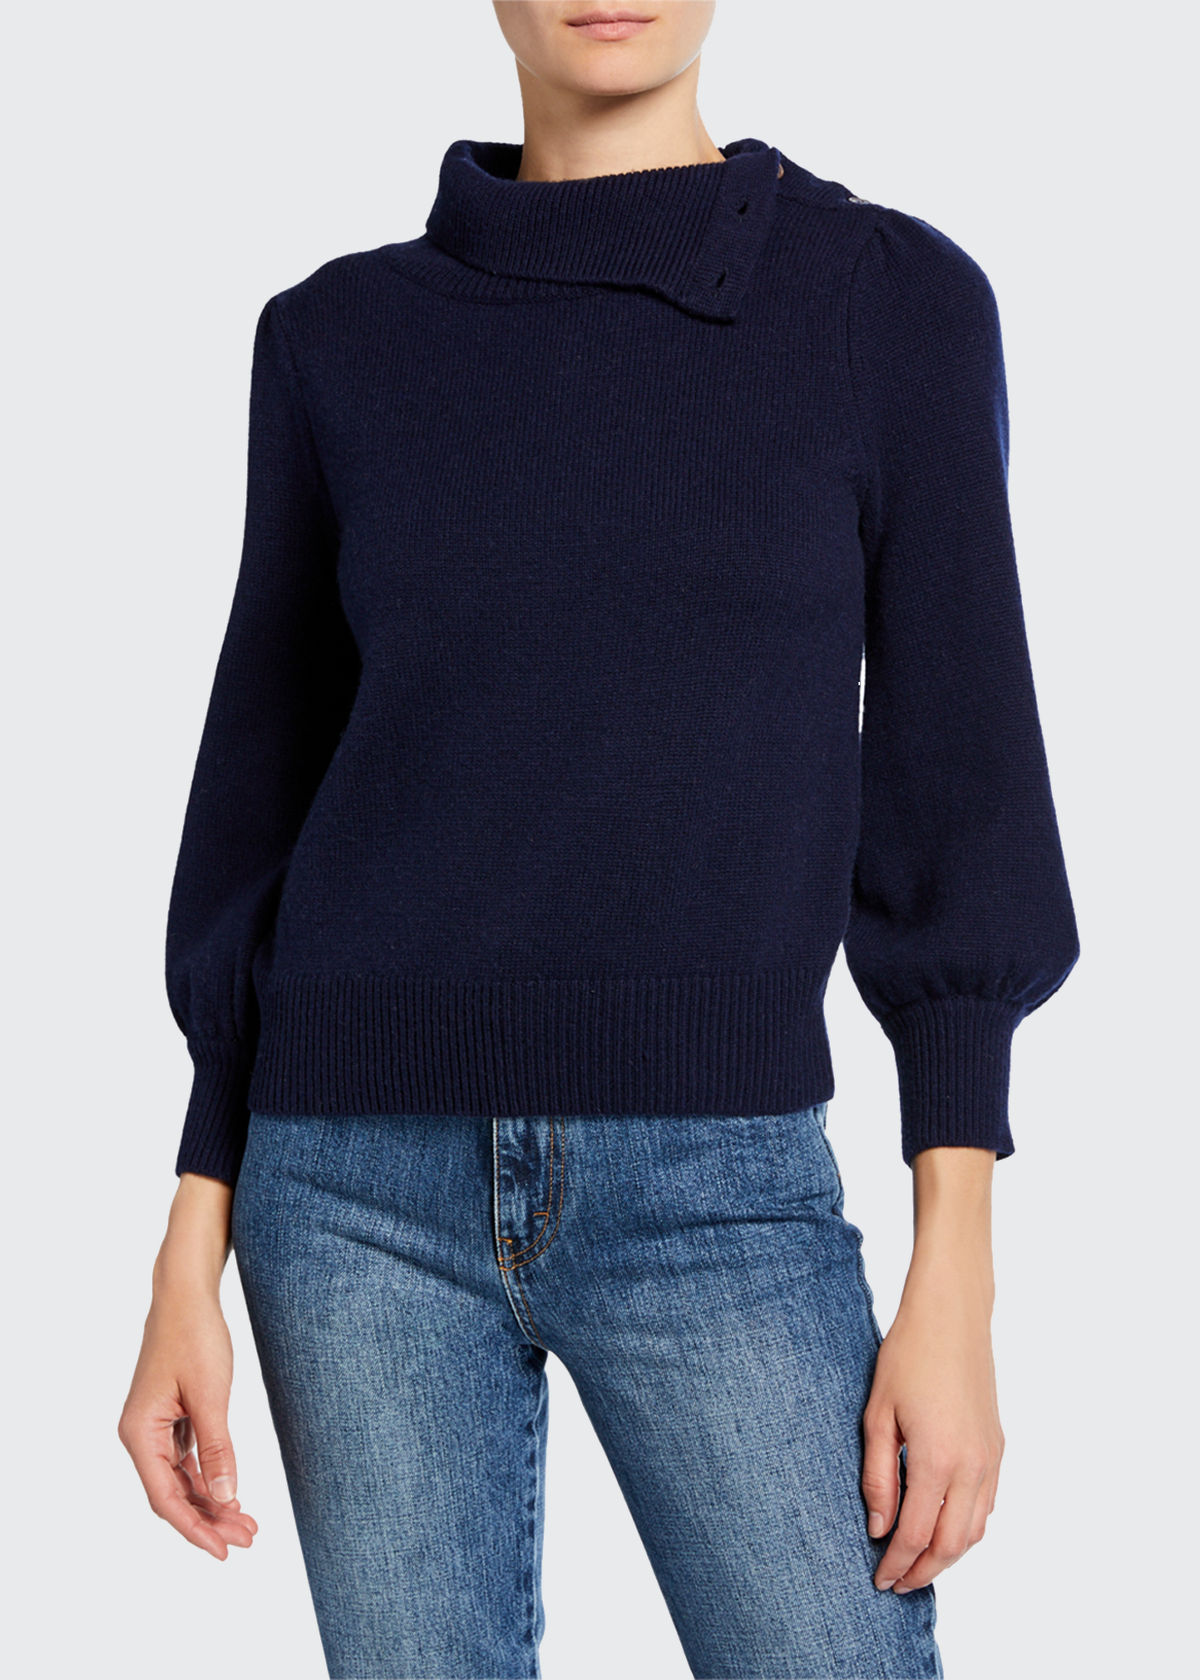 Co Sweaters CASHMERE CONVERTIBLE POET-SLEEVE SWEATER